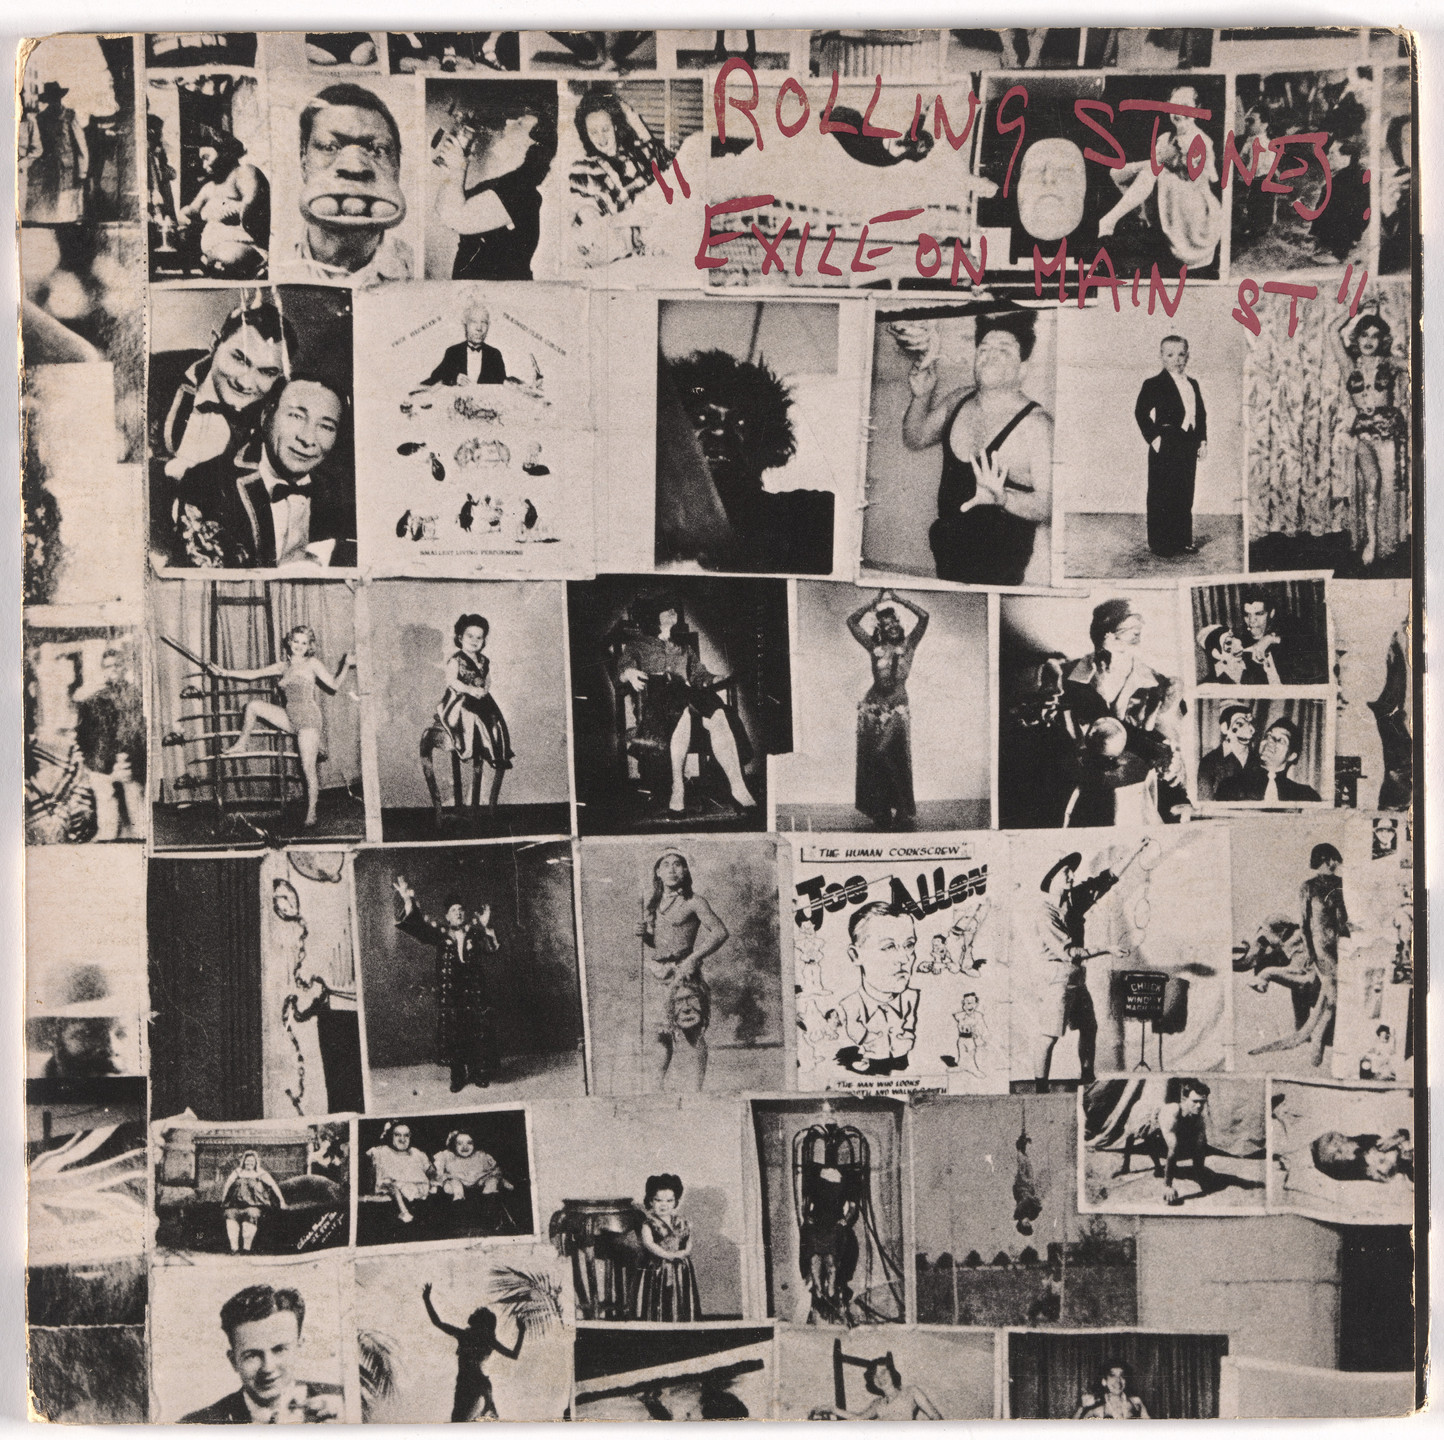 Robert Frank, John Van Hamersveld, Norman Seeff, Rolling Stones Records. Album cover for The Rolling Stones, Exile on Main St.. 1972